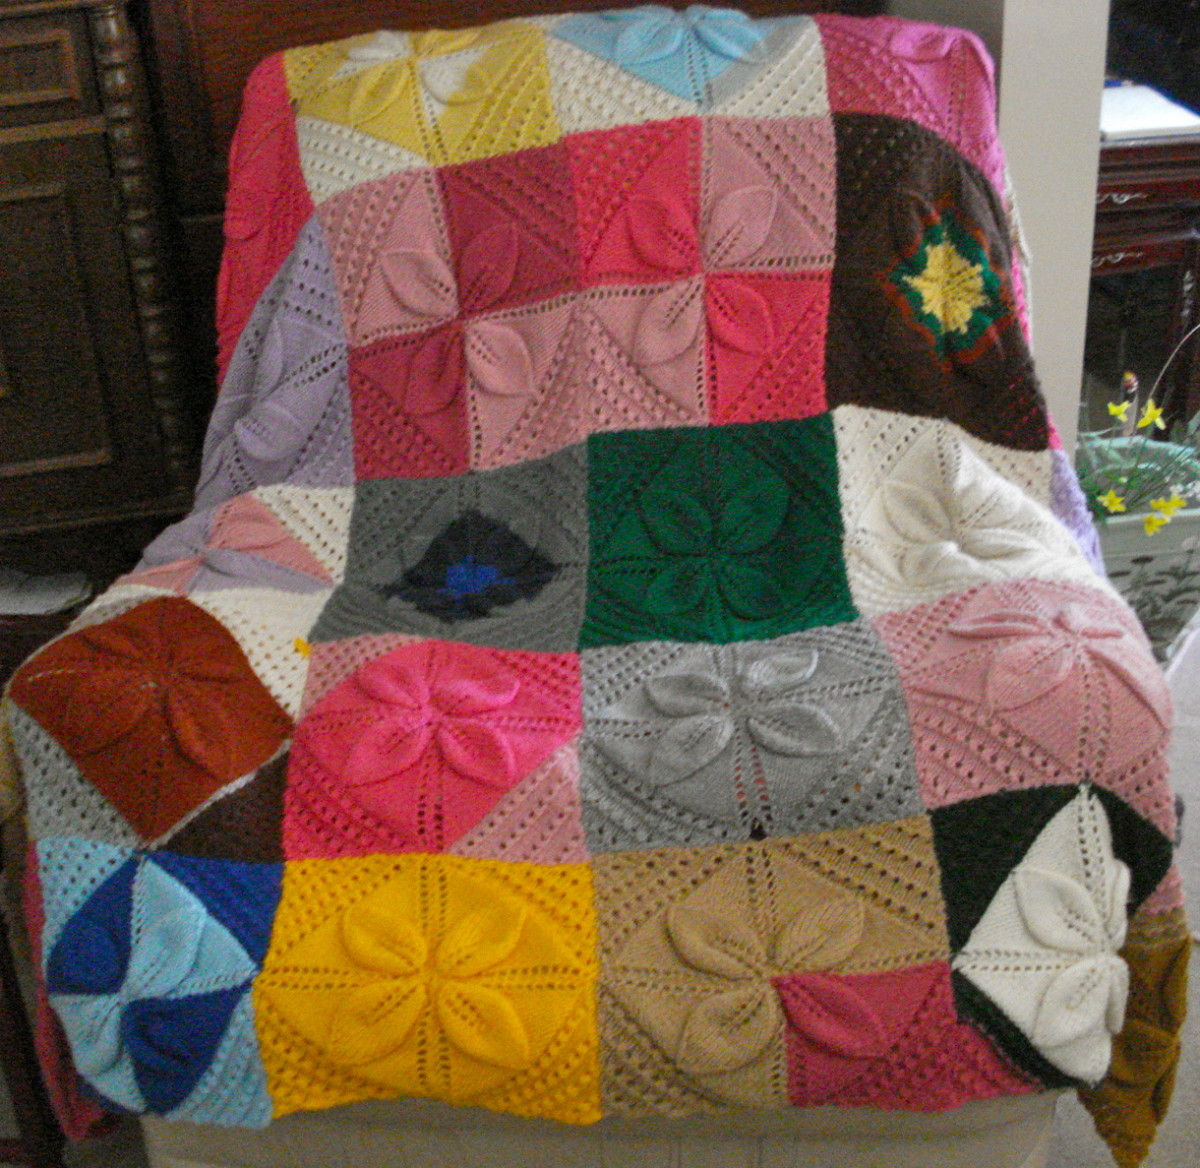 Knitting Project: A Cosy Rug